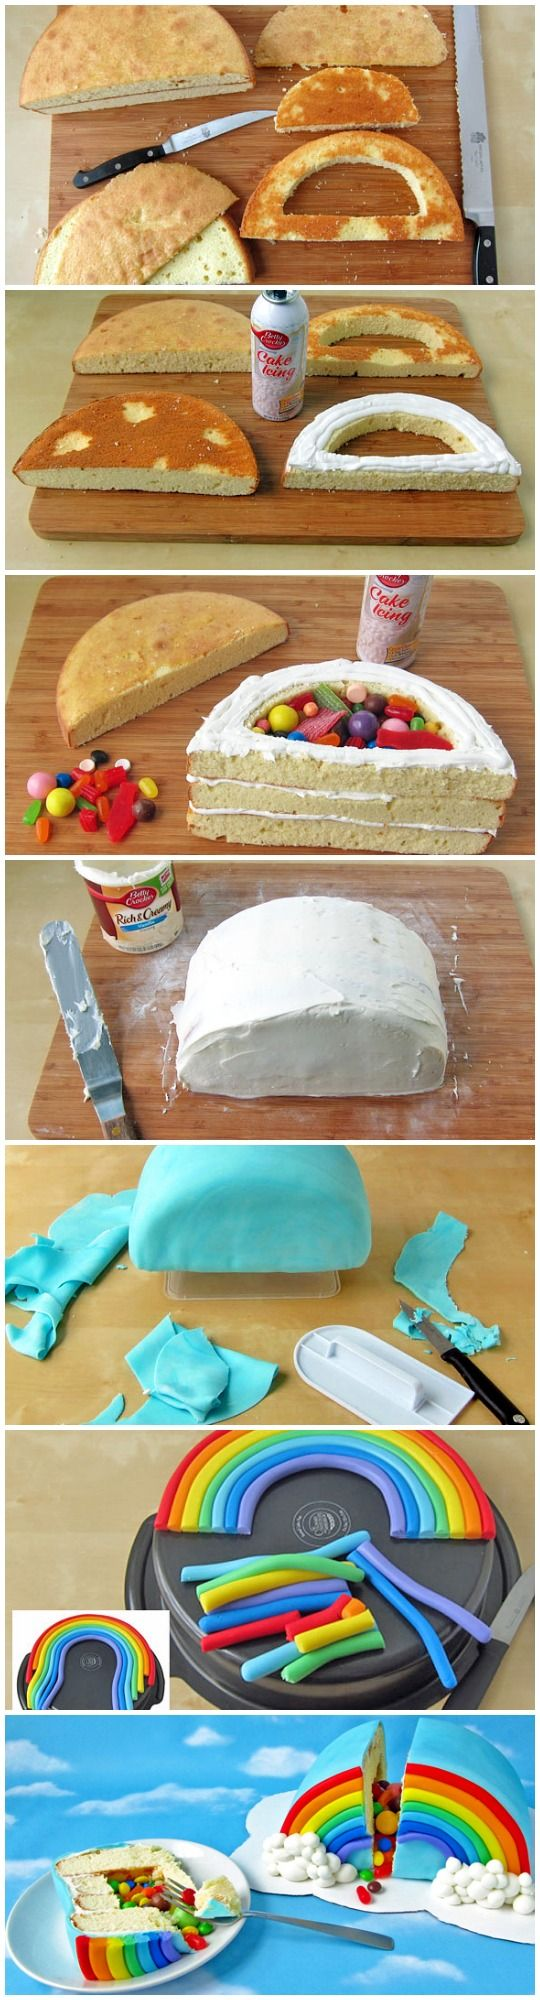 Rainbow Piñata Cake. How YUM would this be filled with fresh fruit like strawberries and raspberries?